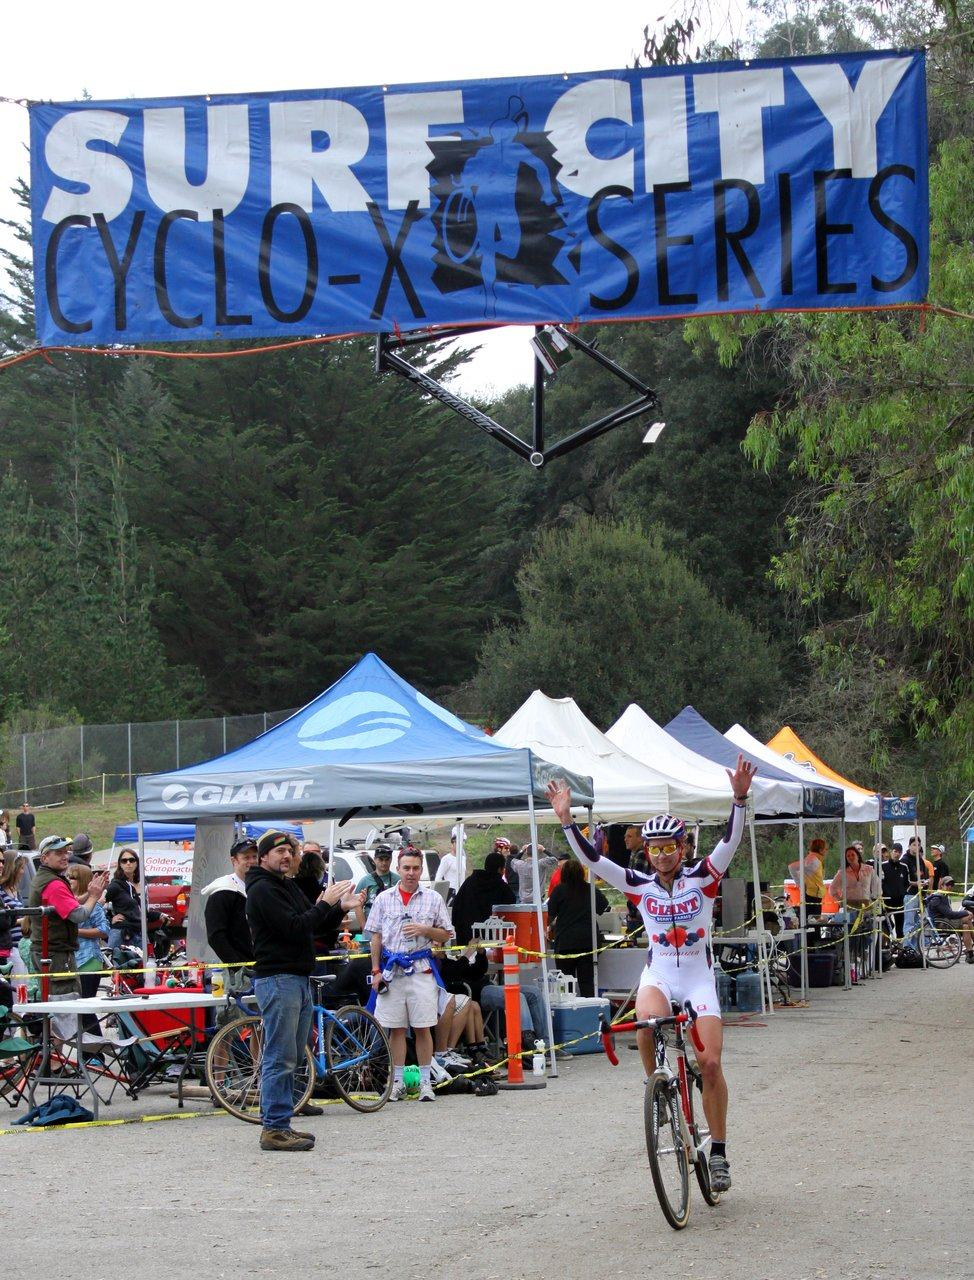 Miller takes the win. Surf City Cyclocross Series Finale, Aptos High School, 1/10/10. ? Cyclocross Magazine